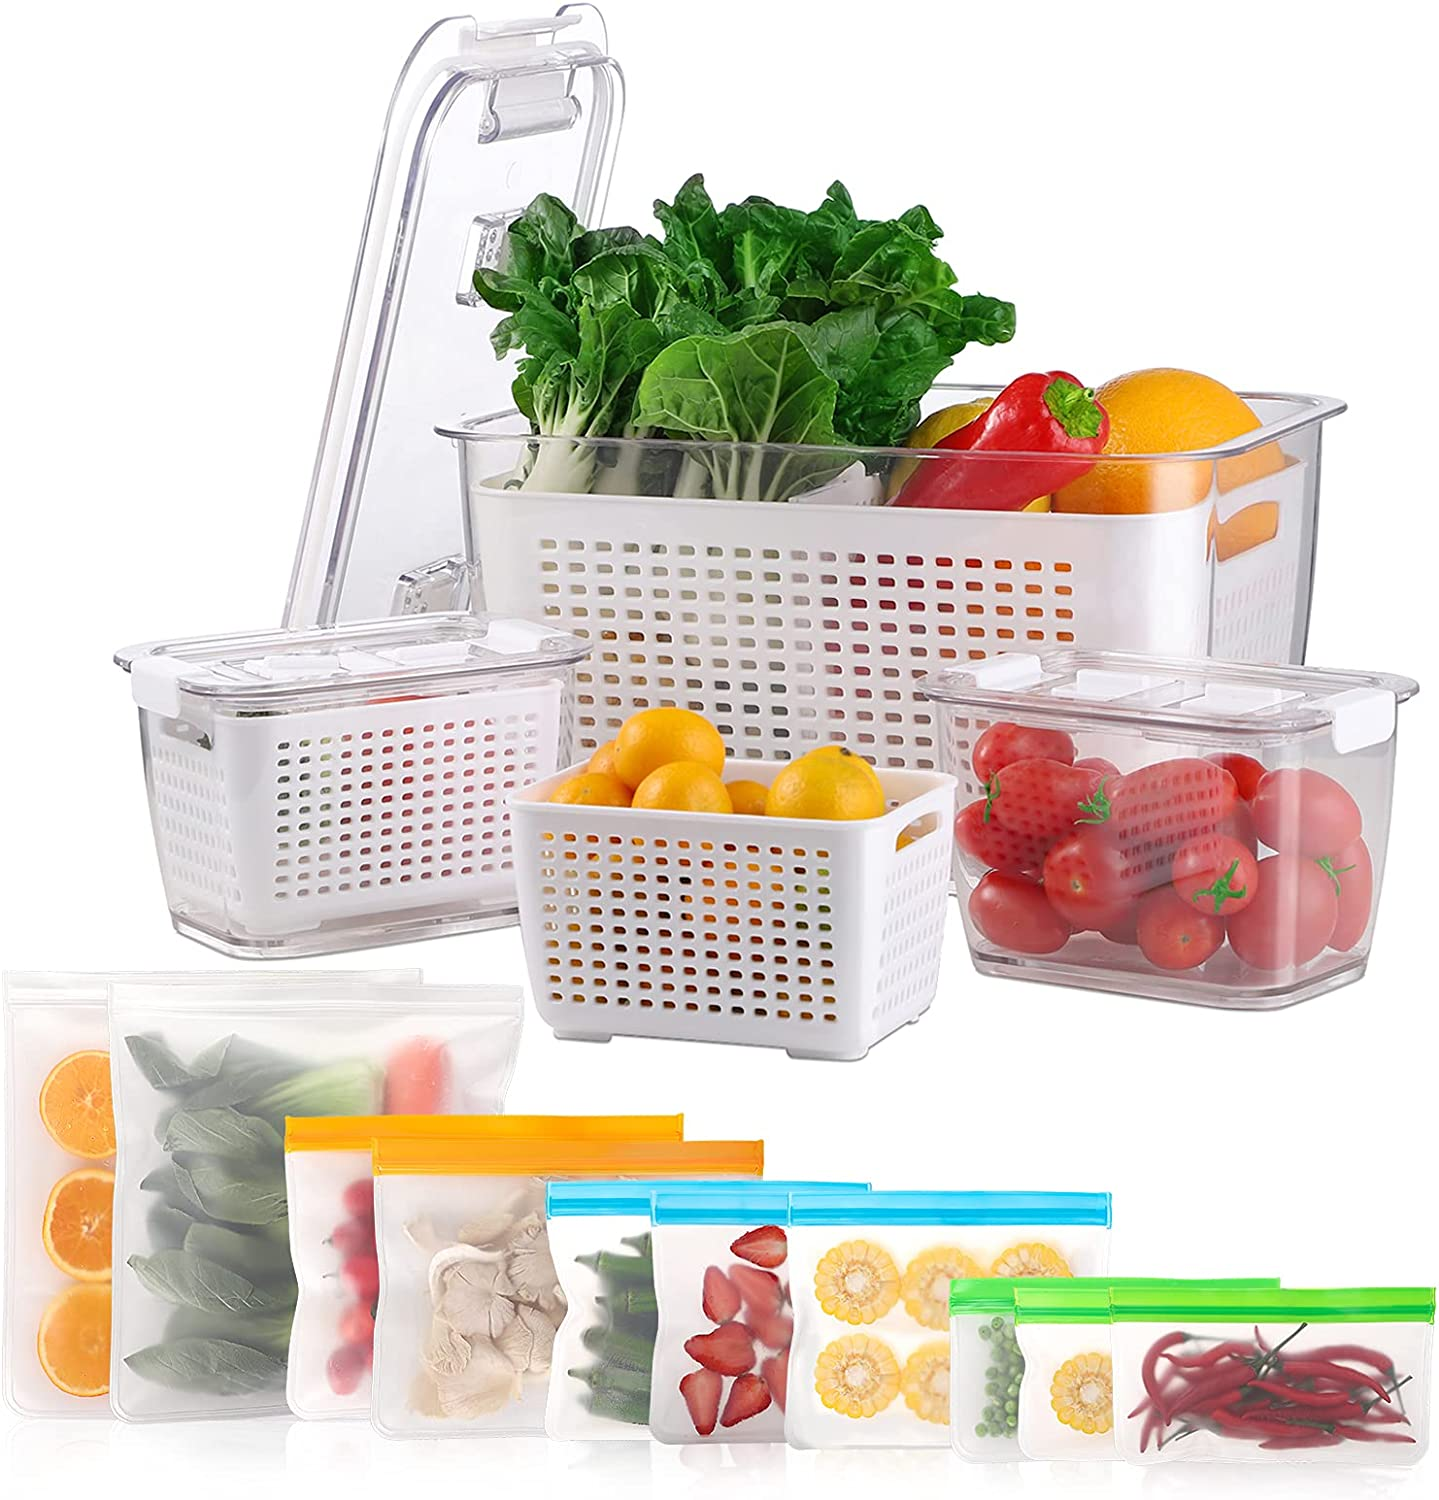 Reusable Freezer Bags & Fruit Storage Containers for Fridge, 3 Pack Produce Saver Containers + 10 Pack BPA FREE Reusable Food Storage Bags, Vegetable Fruit Container Storage Resealable Lunch Bag for Meat Fruit Veggies